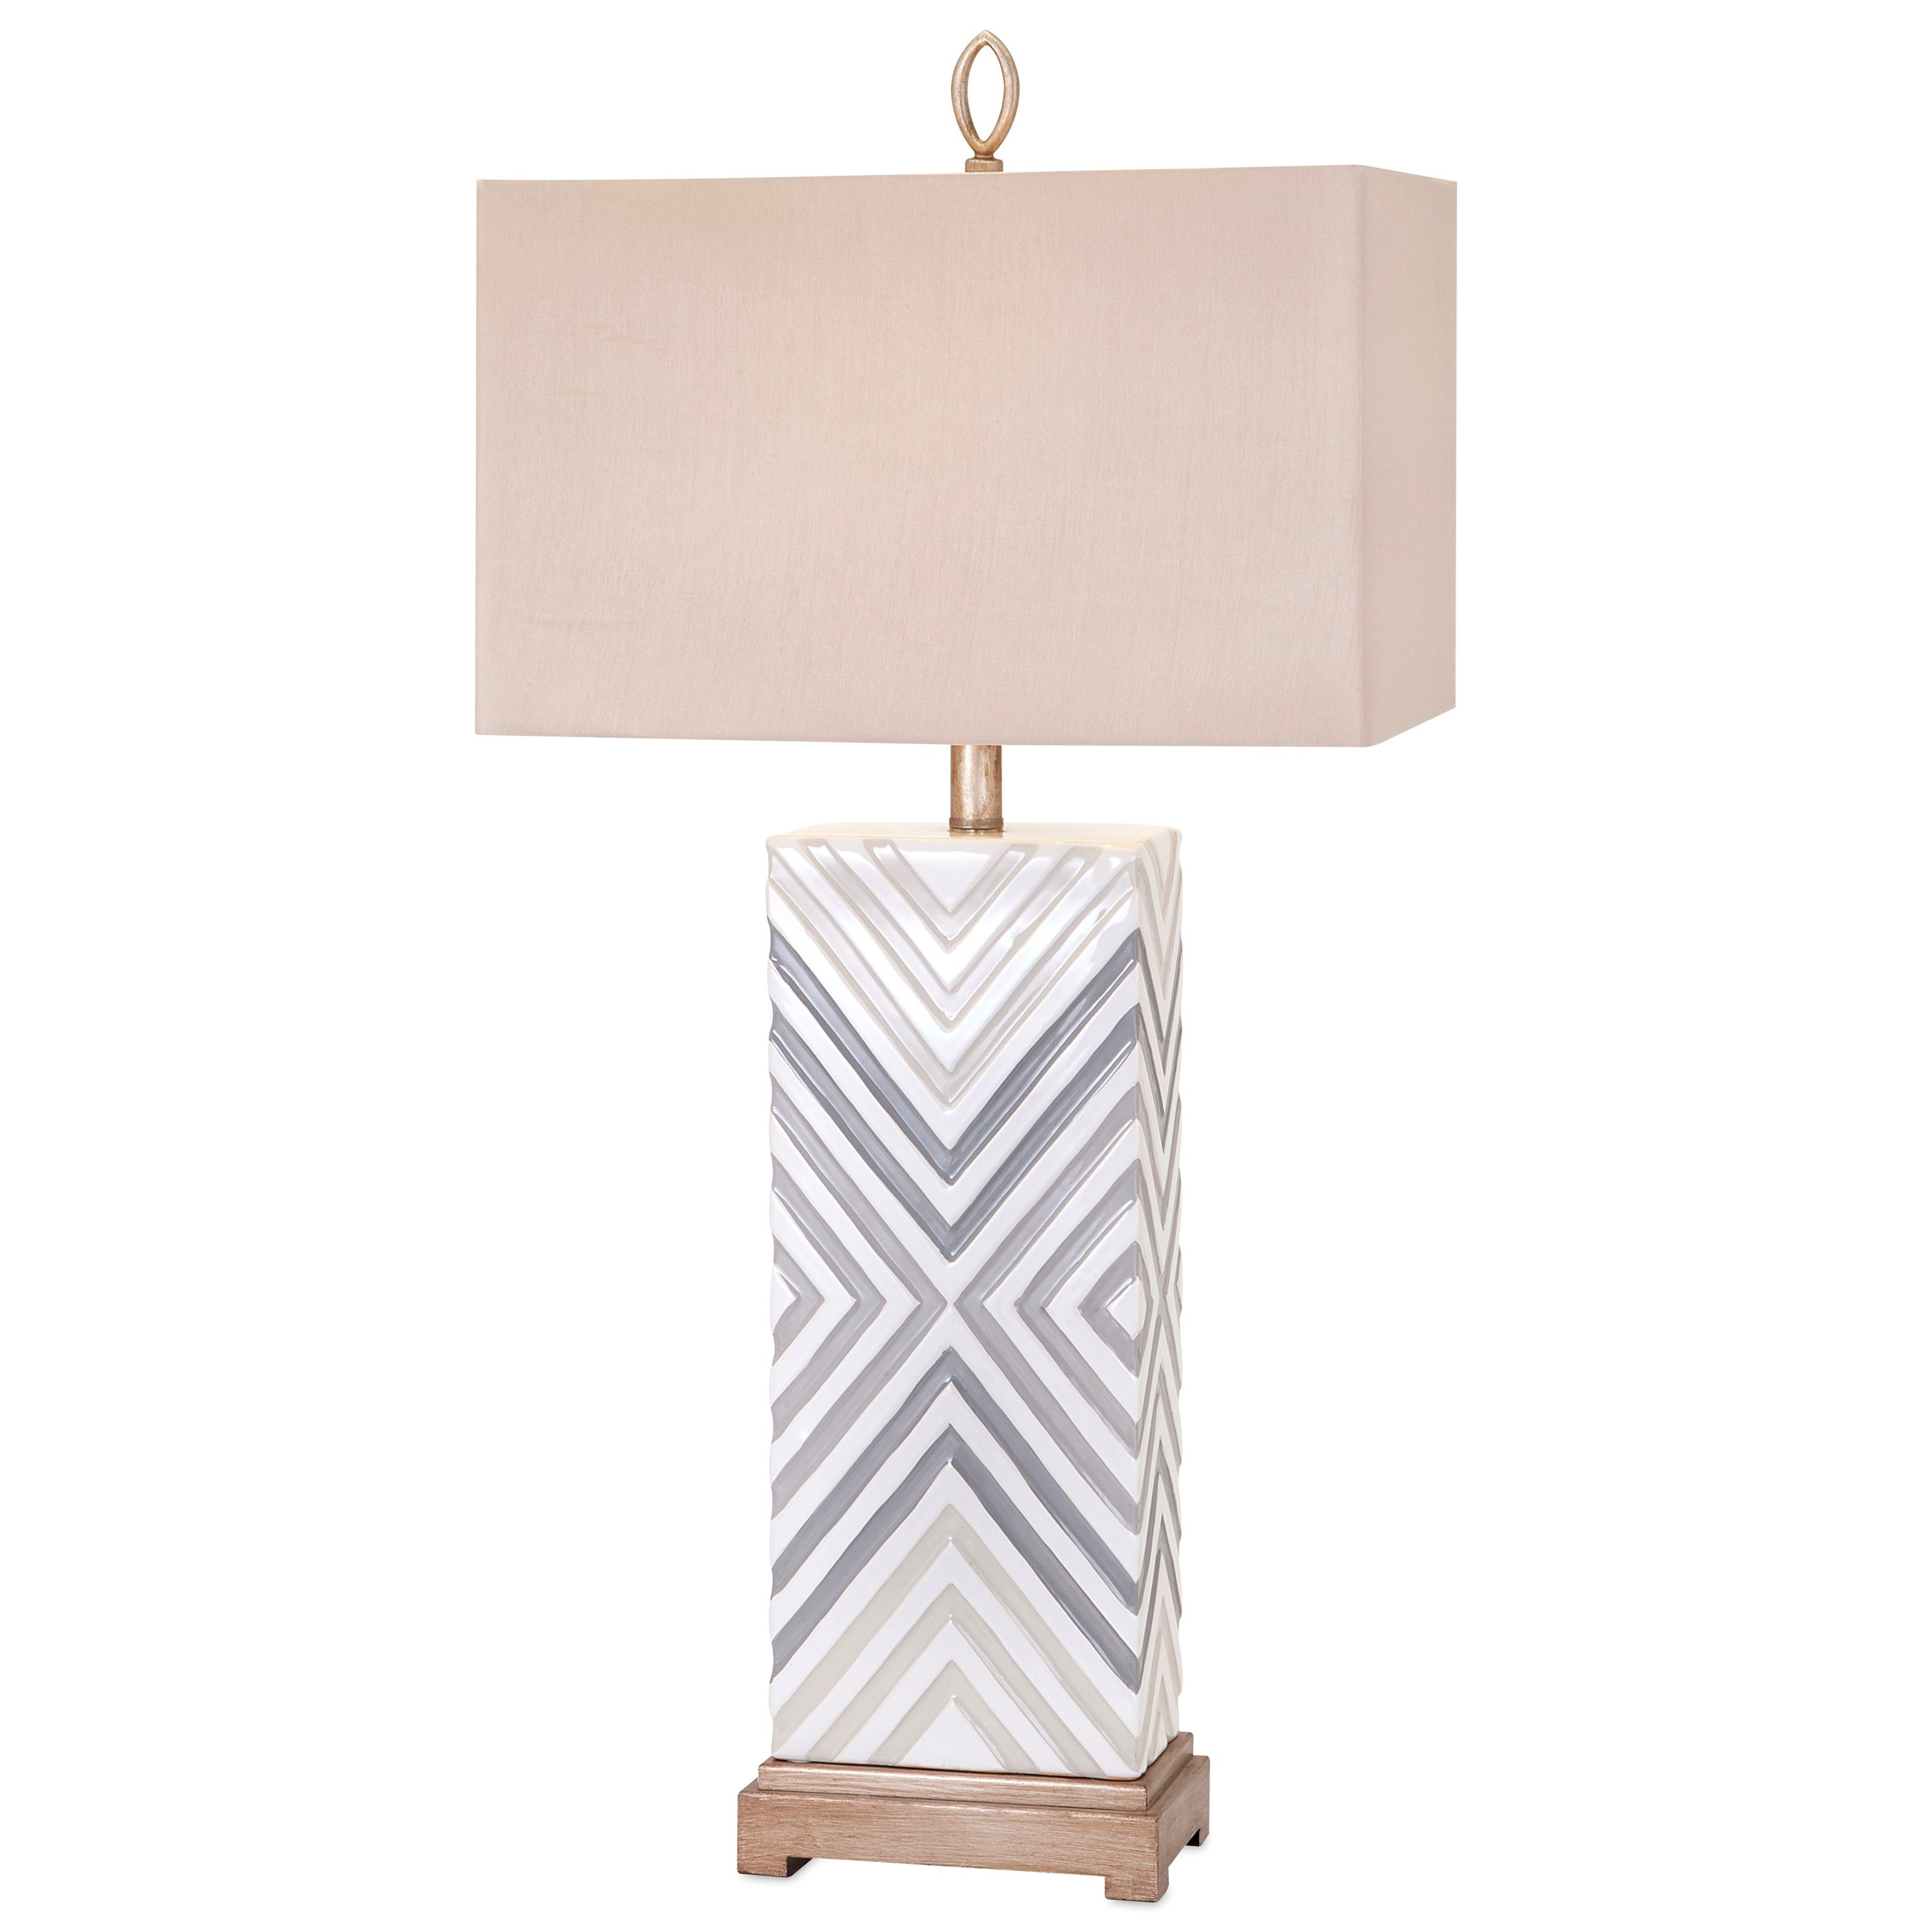 Becky Fletcher Lillian Table Lamp by IMAX Worldwide Home at Alison Craig Home Furnishings